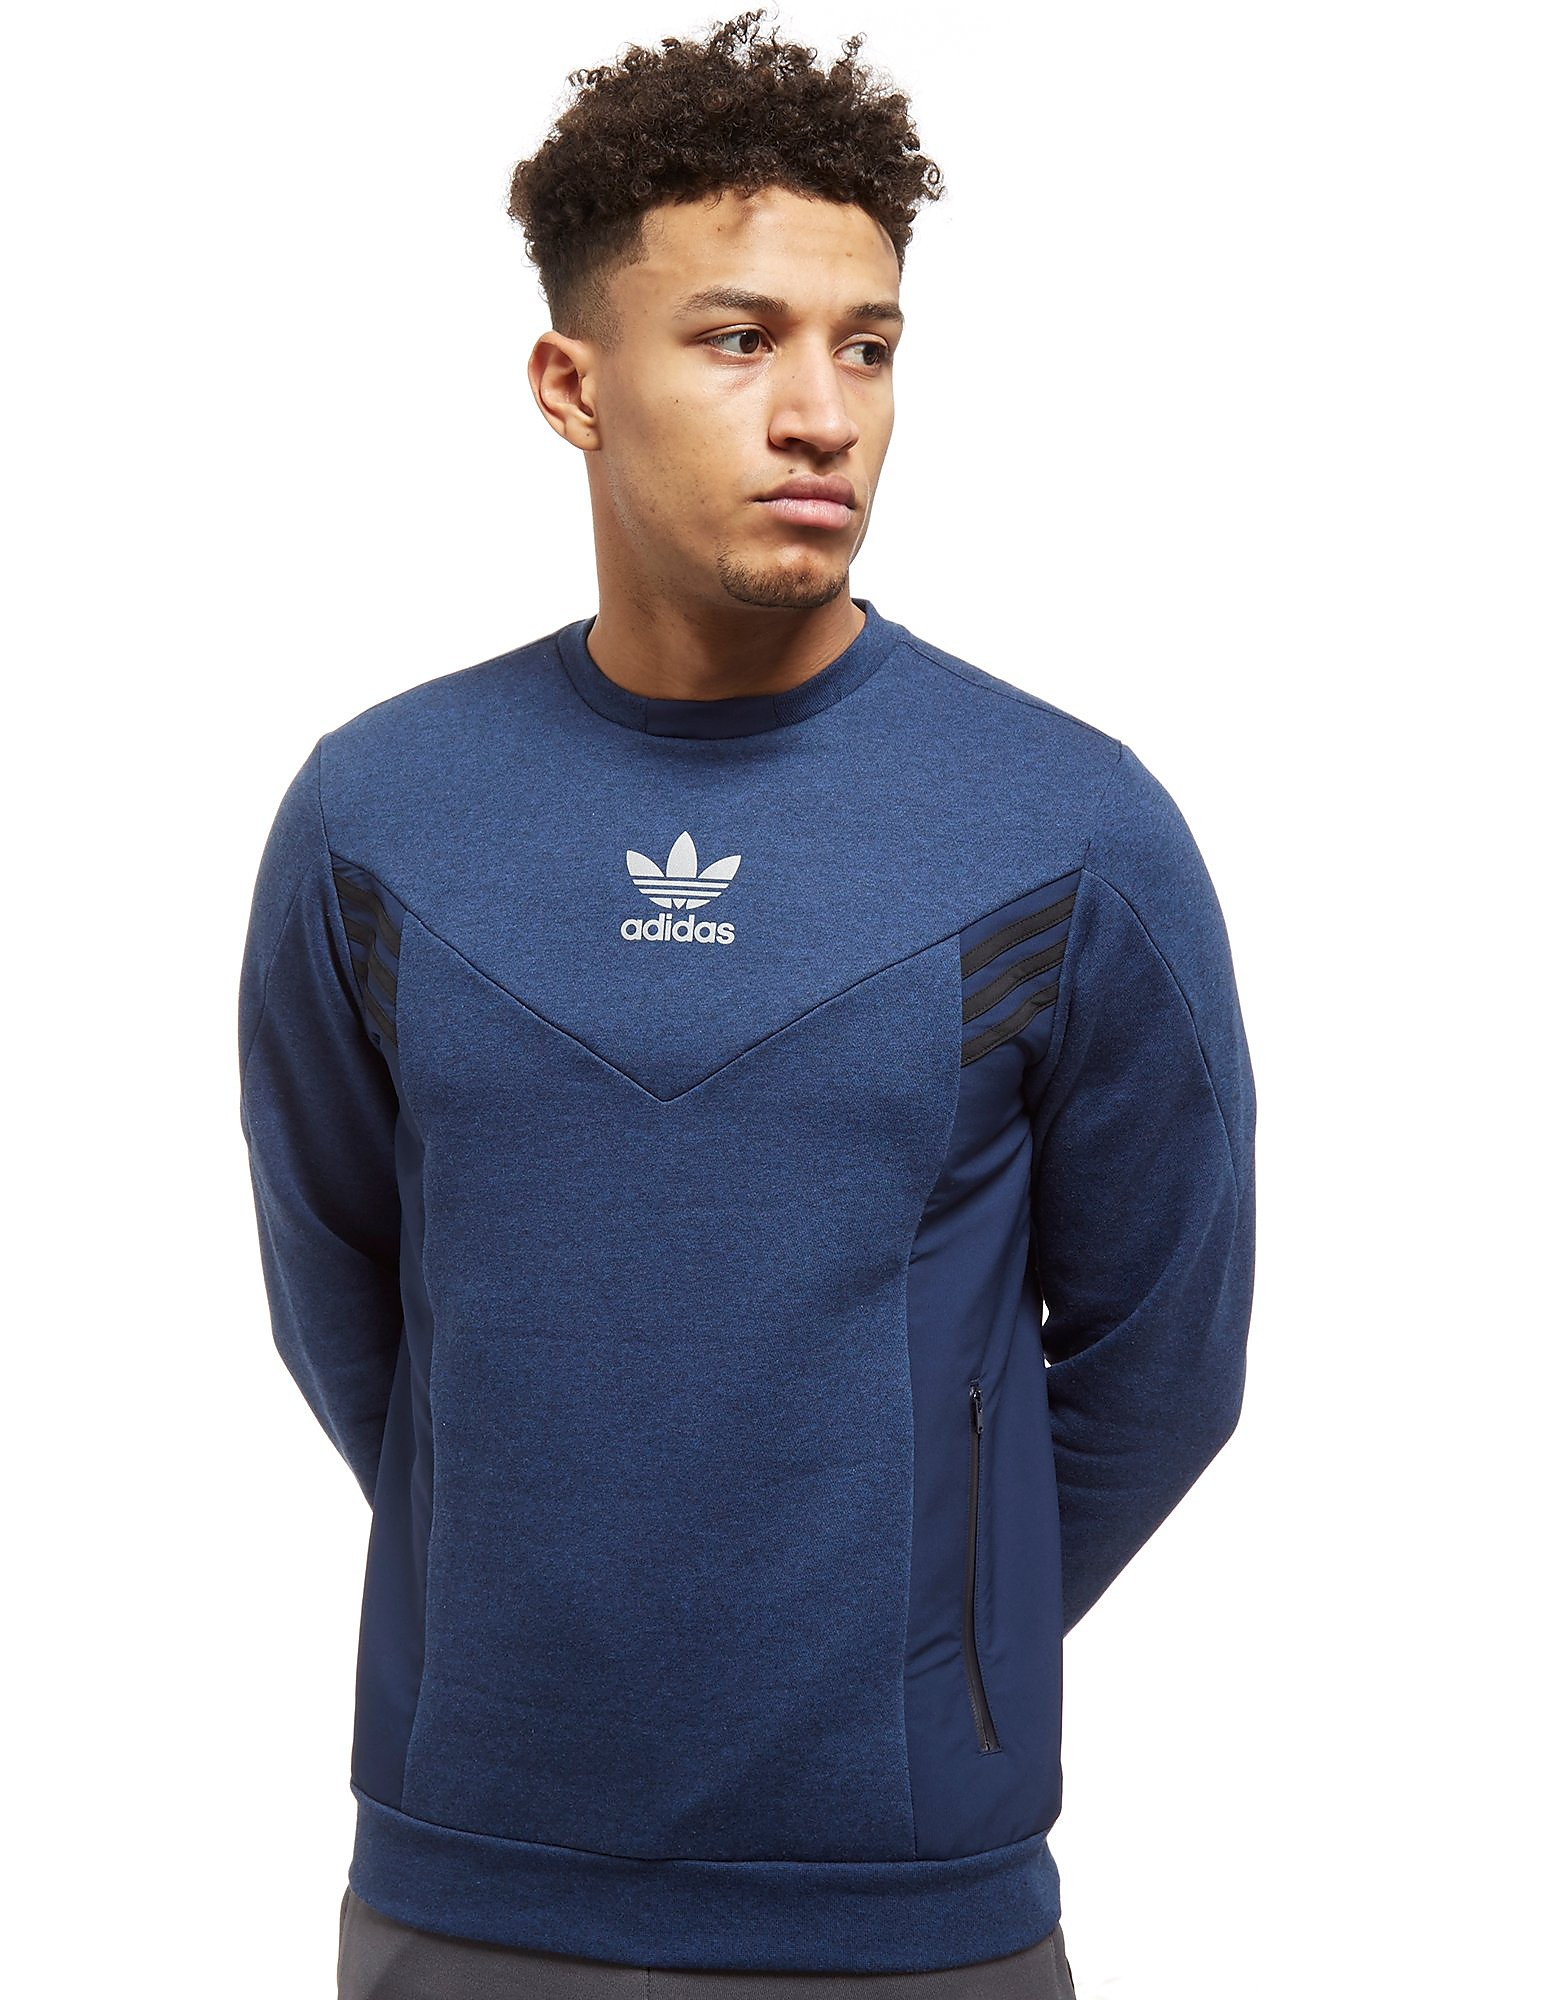 adidas Originals Street Run Crew Sweatshirt